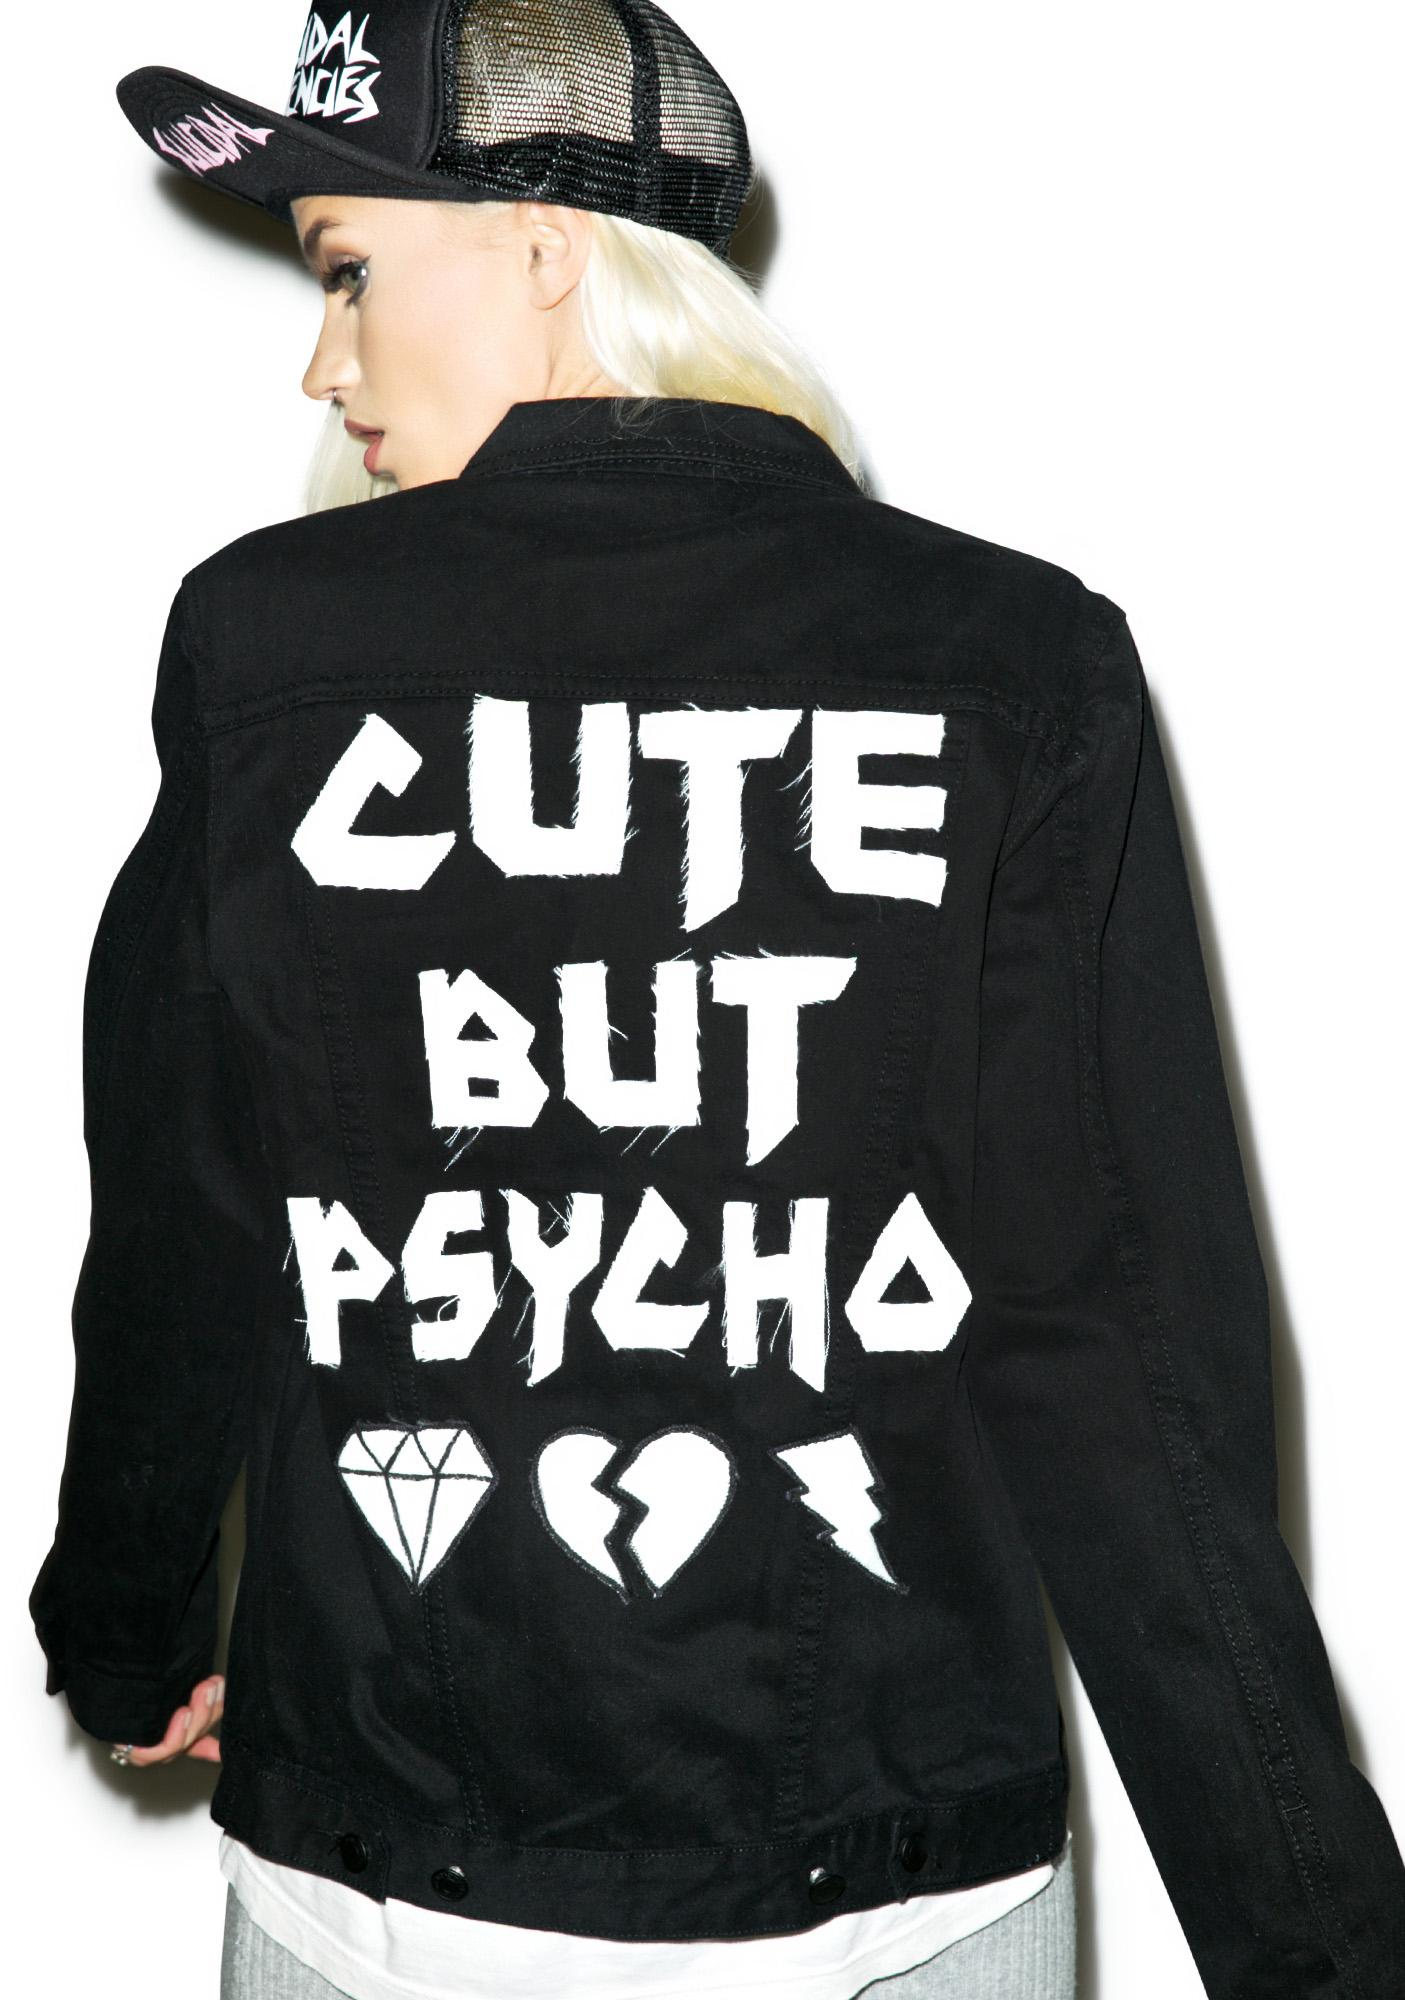 High Heels Suicide Cute But Psycho Jacket